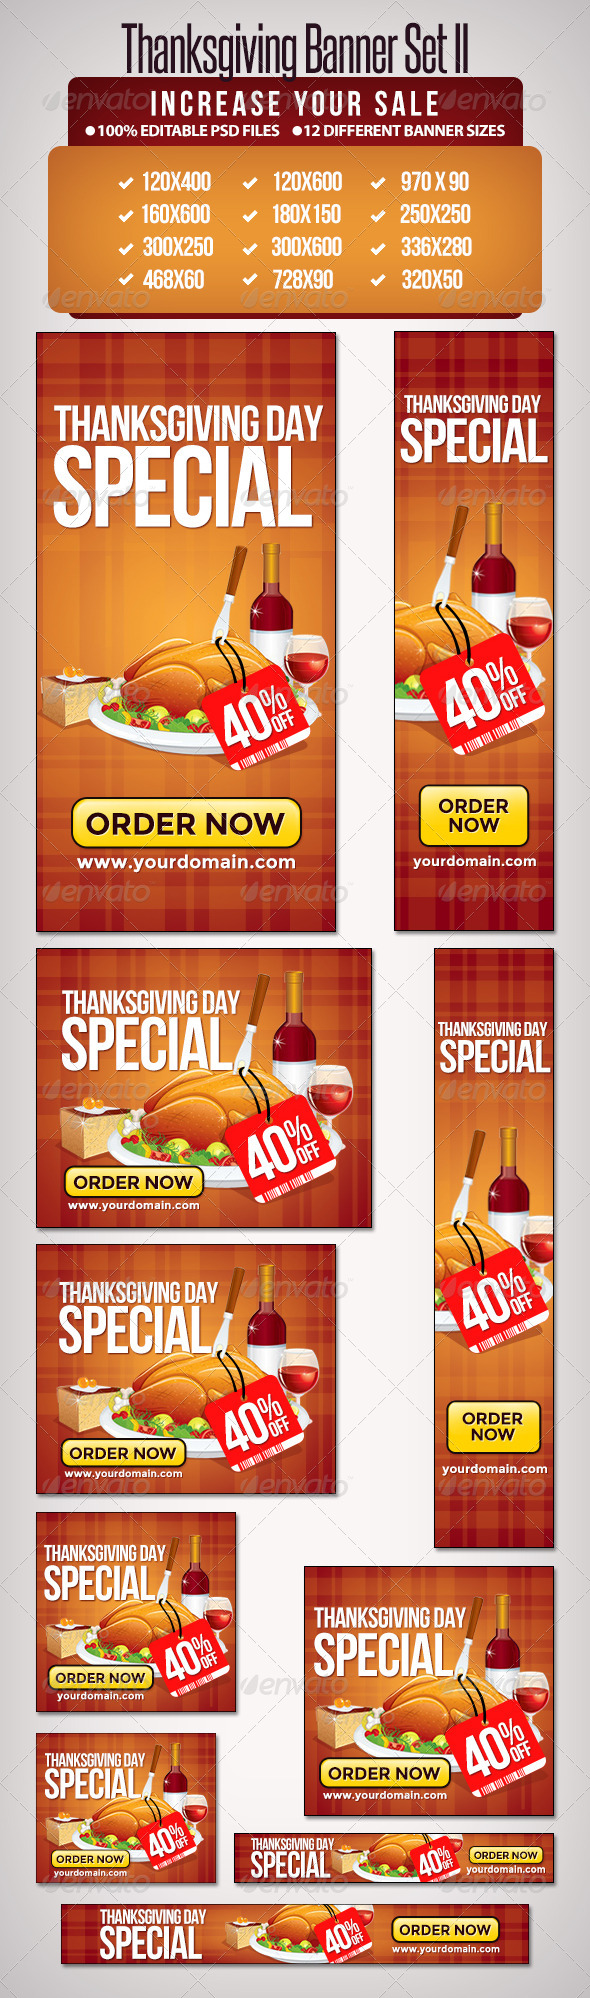 GraphicRiver Thanksgiving Banner Set II 6512719